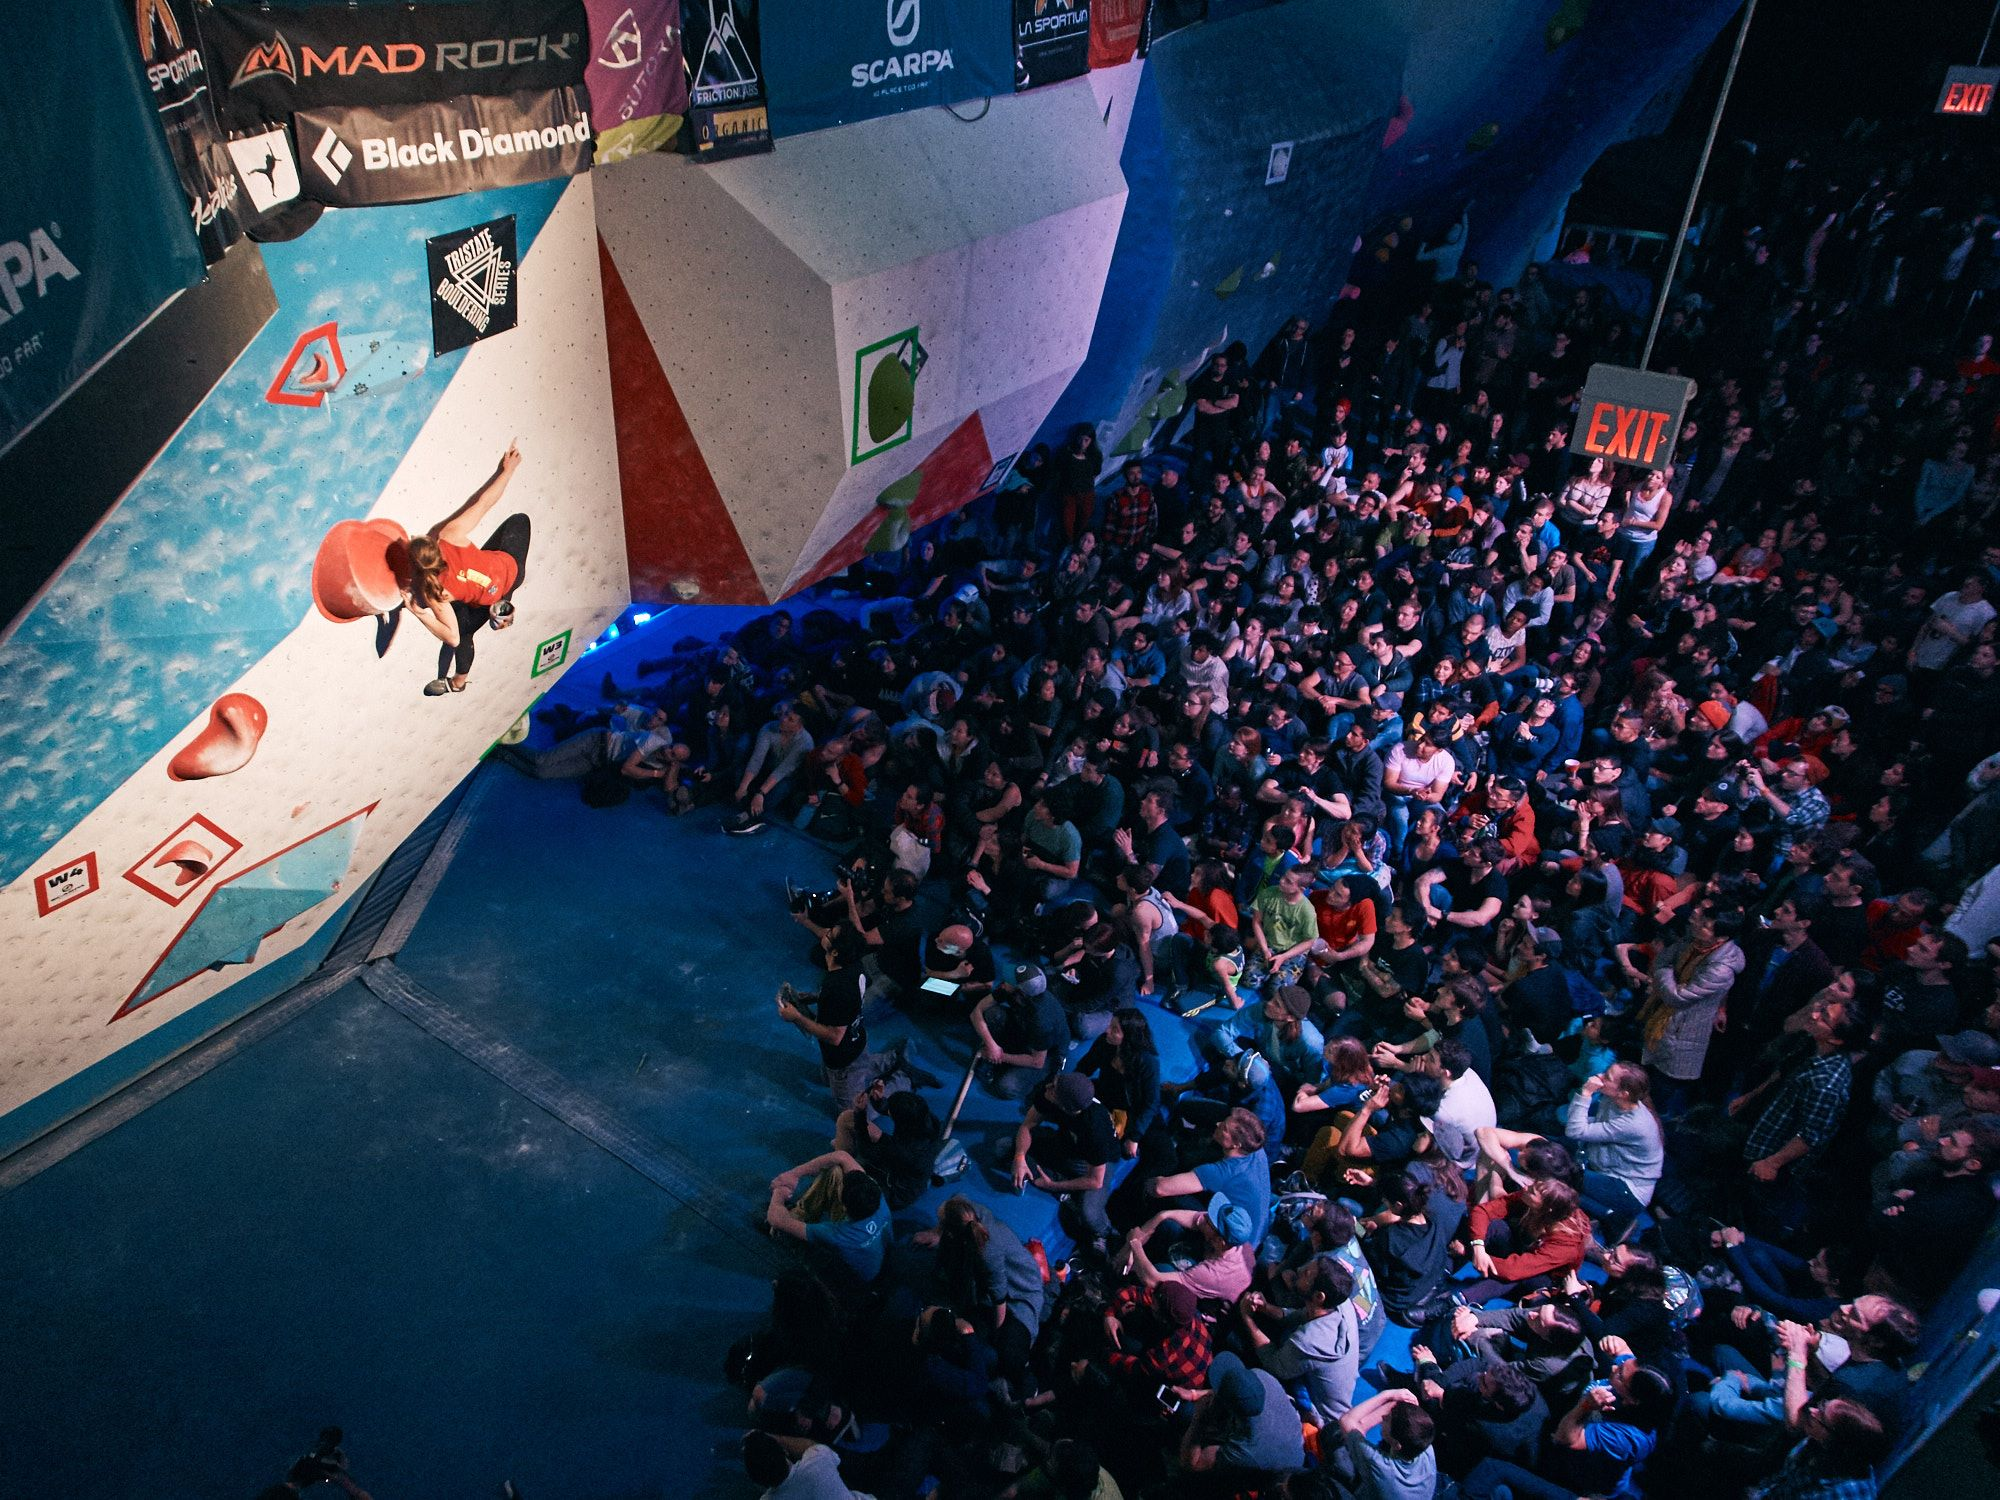 Our very own comp series, the Tristate Bouldering Series, which includes Feats of Strength,finished off its second season with wins from Alex Puccio and Charlie Schreiber.Photo: Joshua Pestka